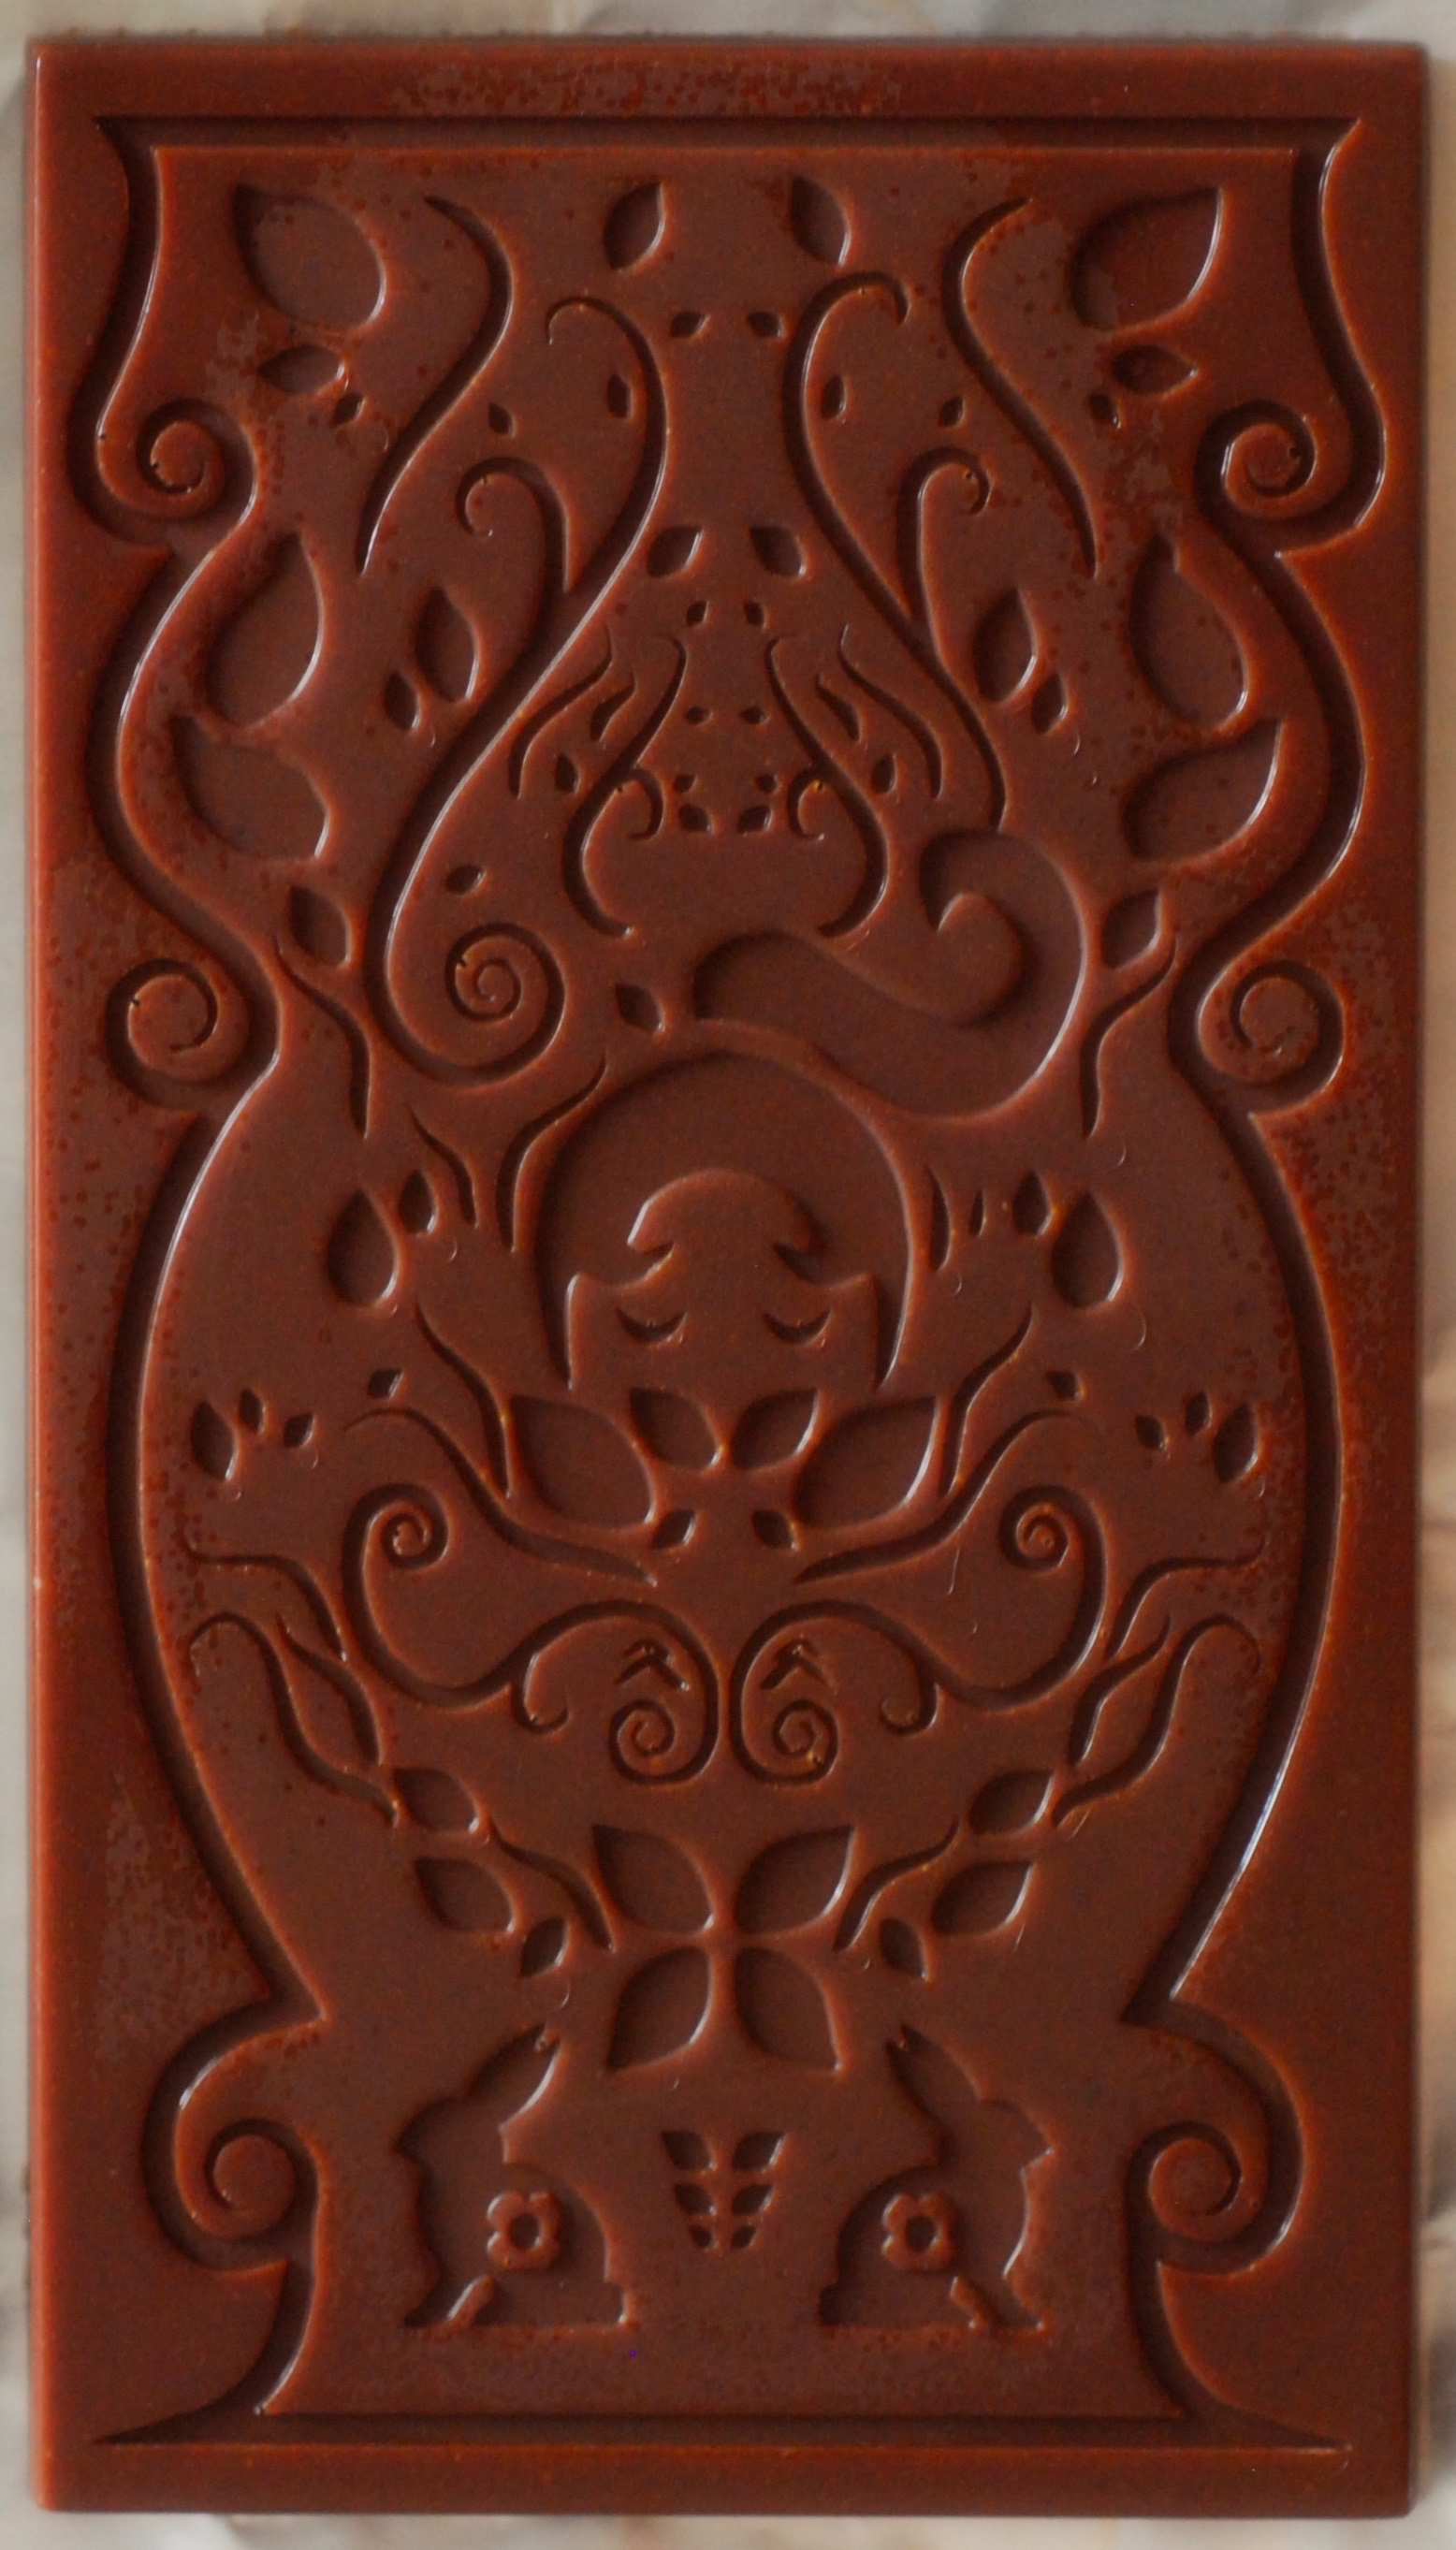 The inspiration - for her design of our chocolate bar came from her own love of chocolate.